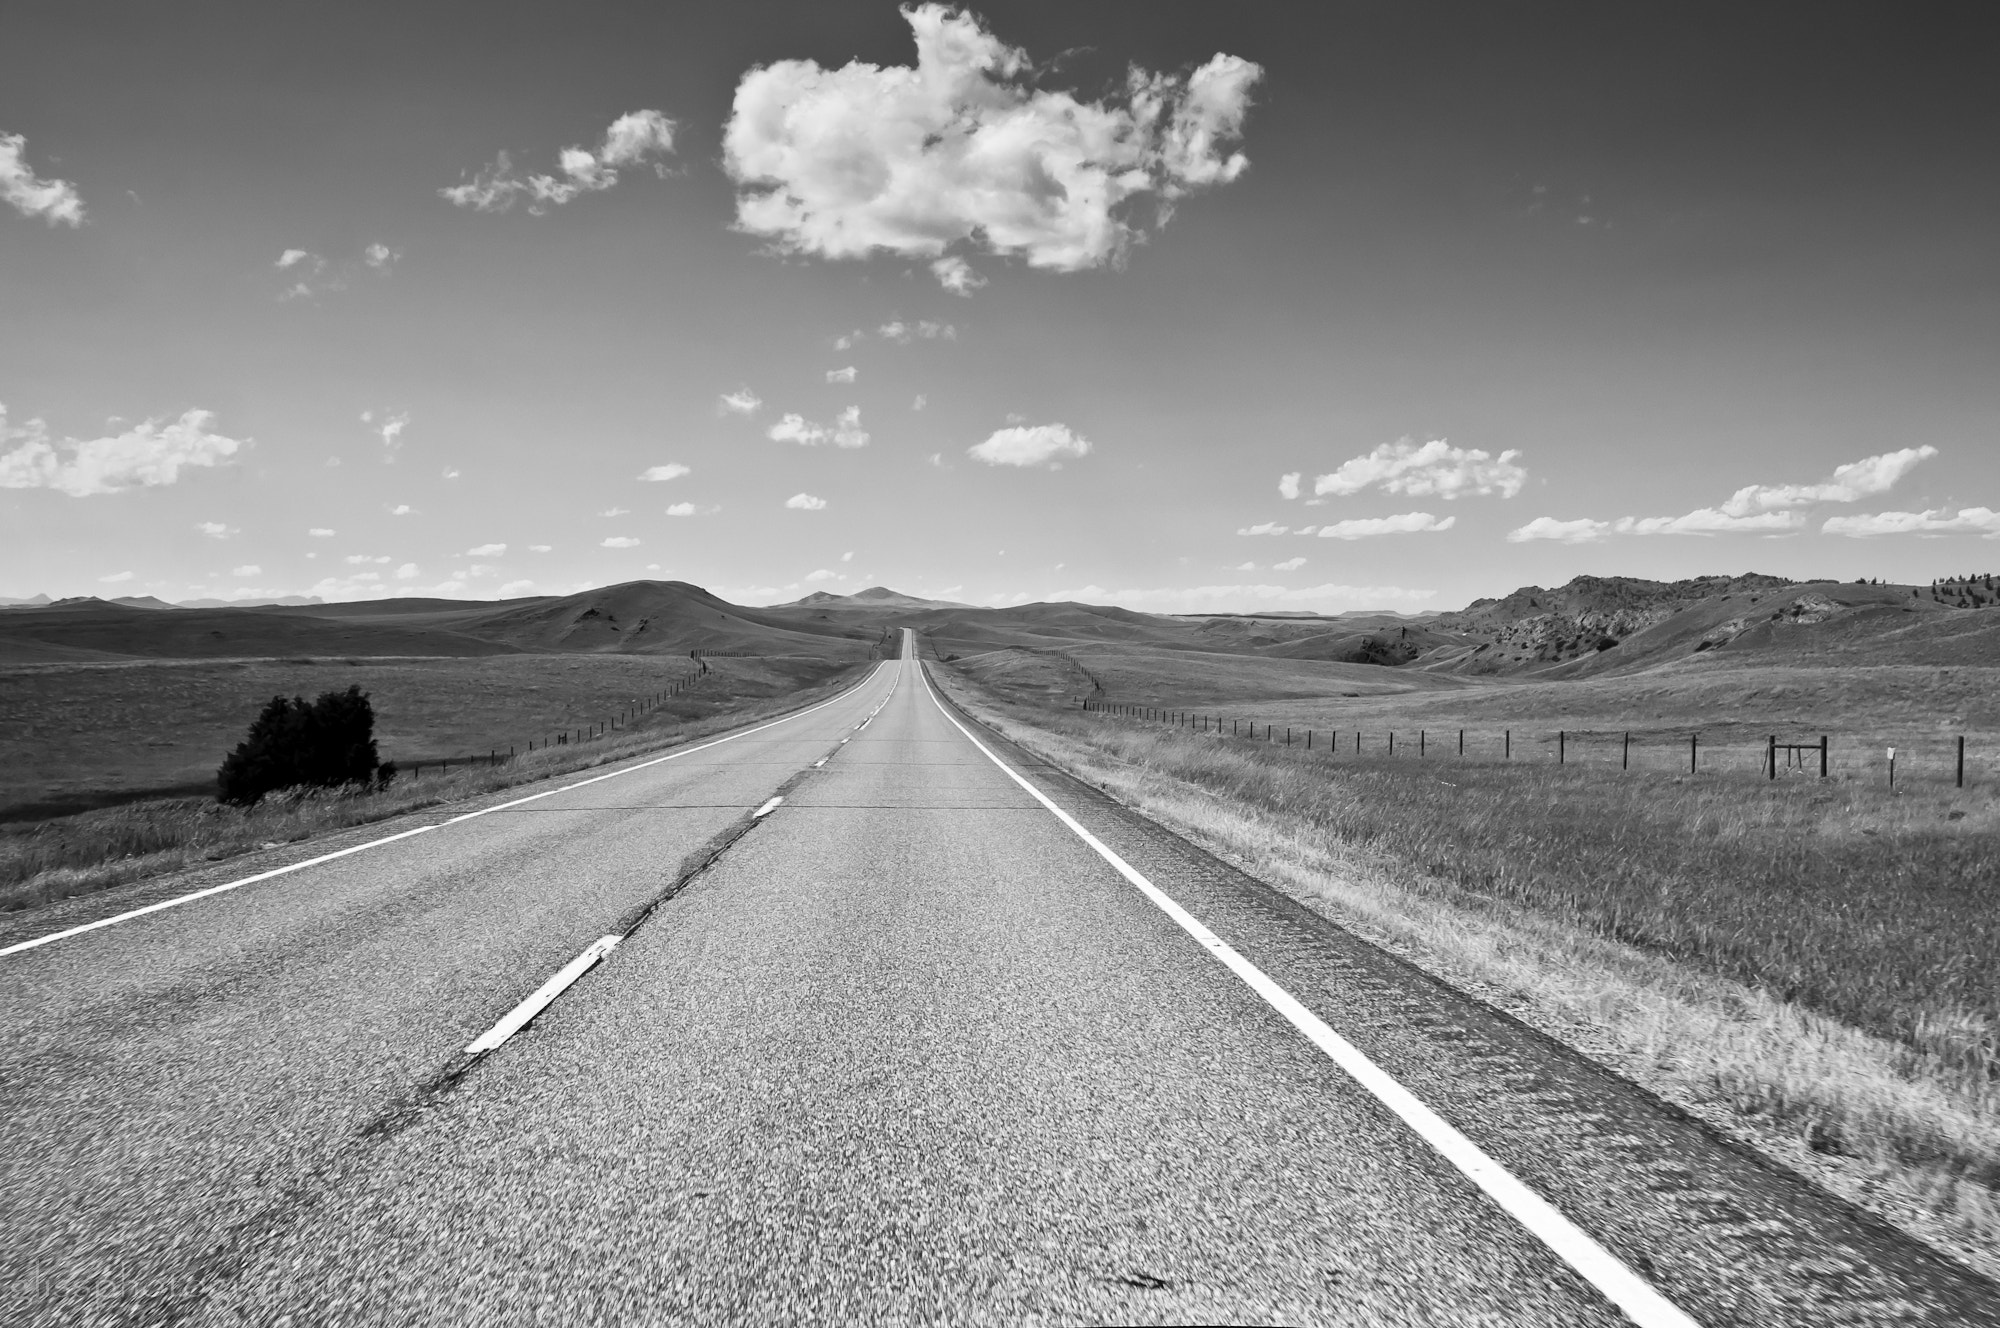 Photograph - the Road - by Jonas Gliß on 500px